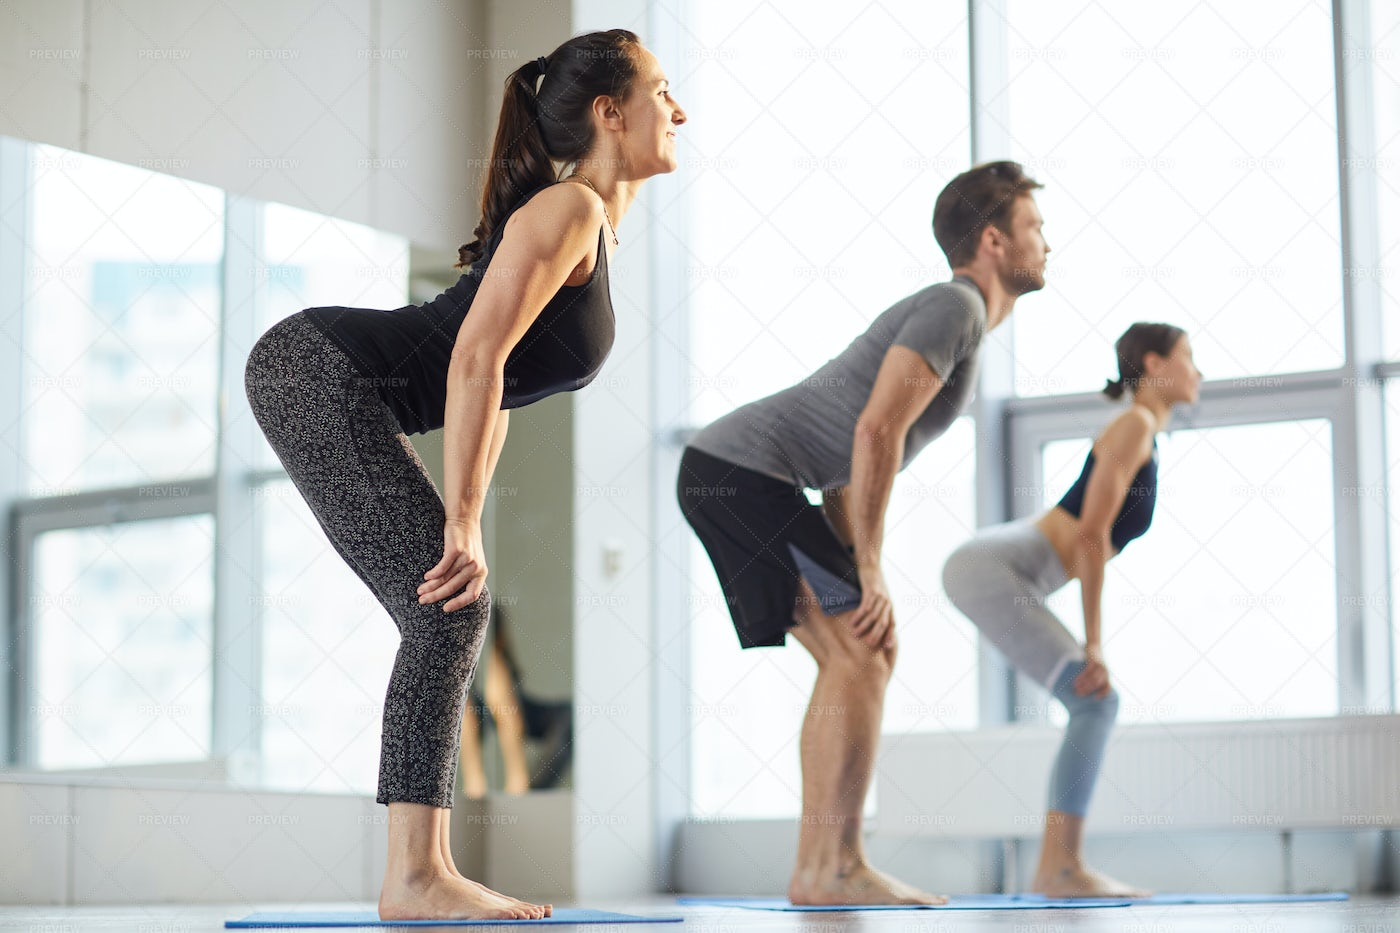 Yoga Students Practicing Back...: Stock Photos